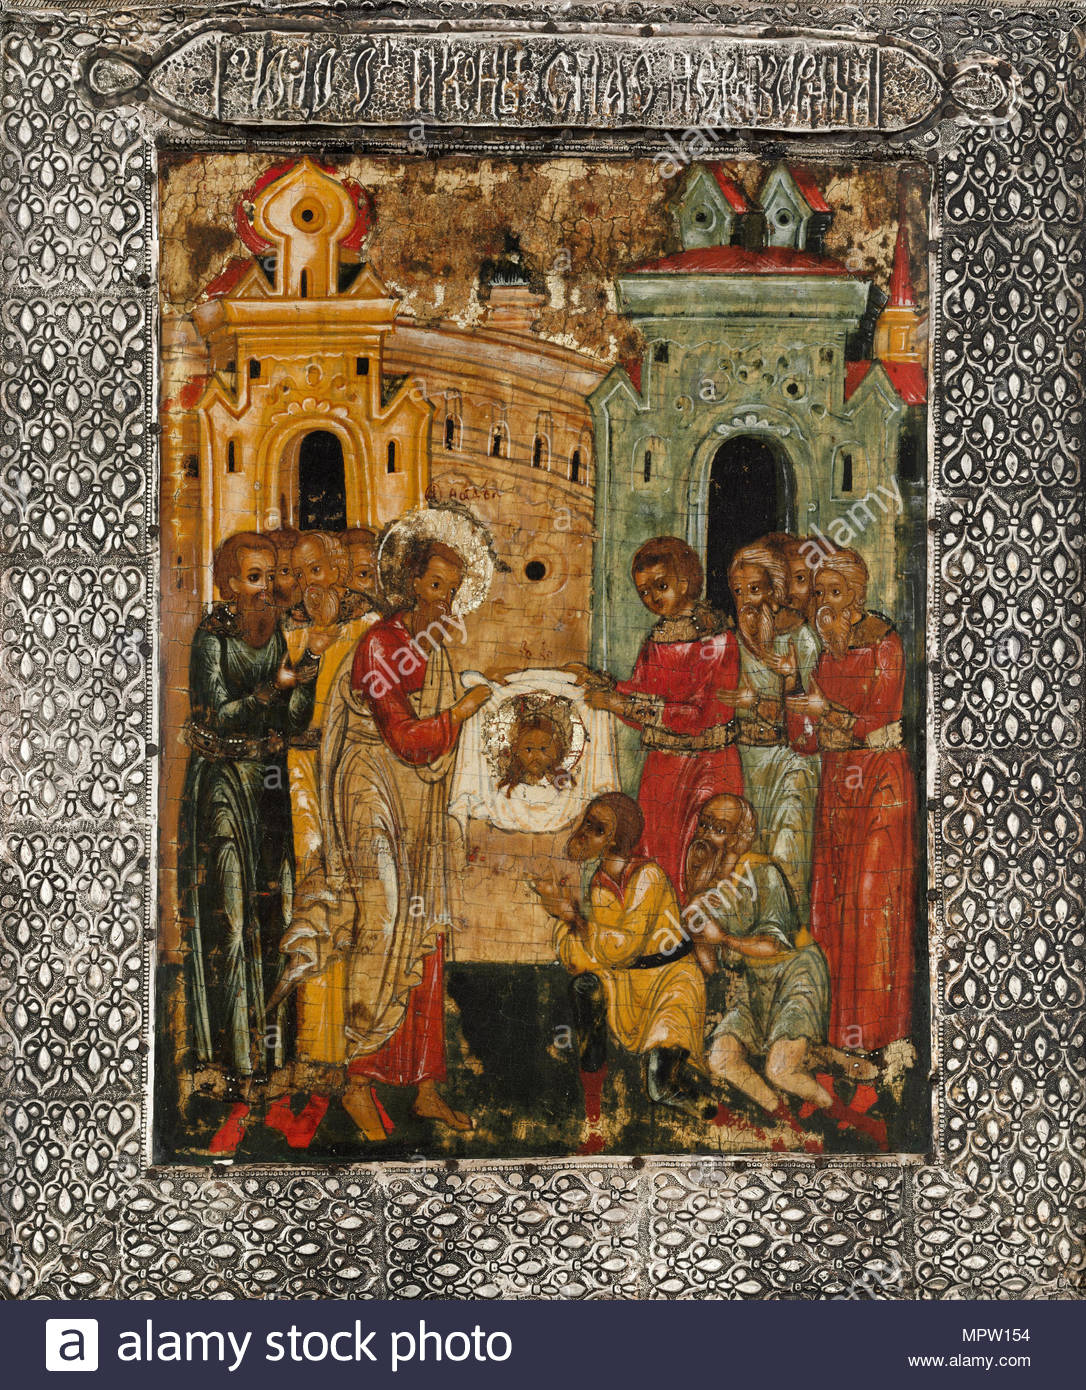 Wonder of the icon of the Saviour Not Made by Hands, ca. 1600. - Stock Image